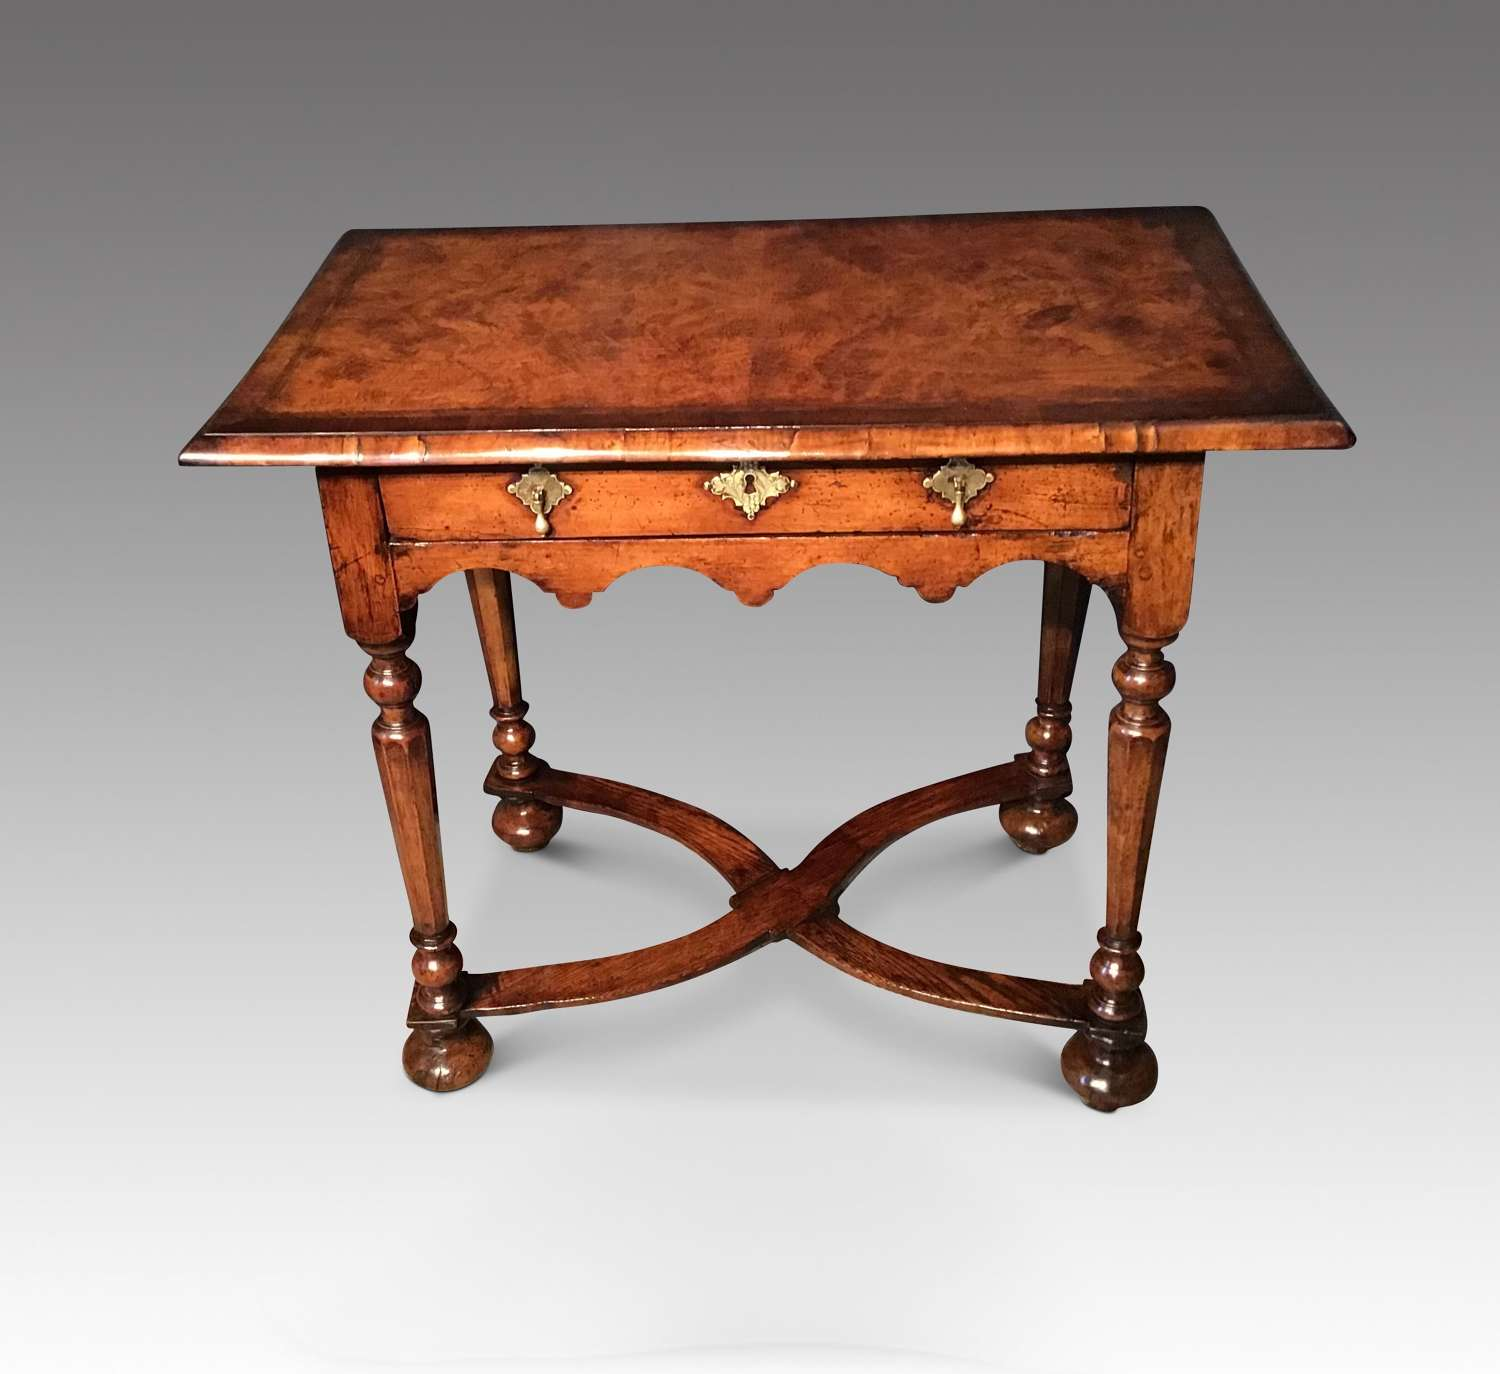 Early 18th century Sidetable.